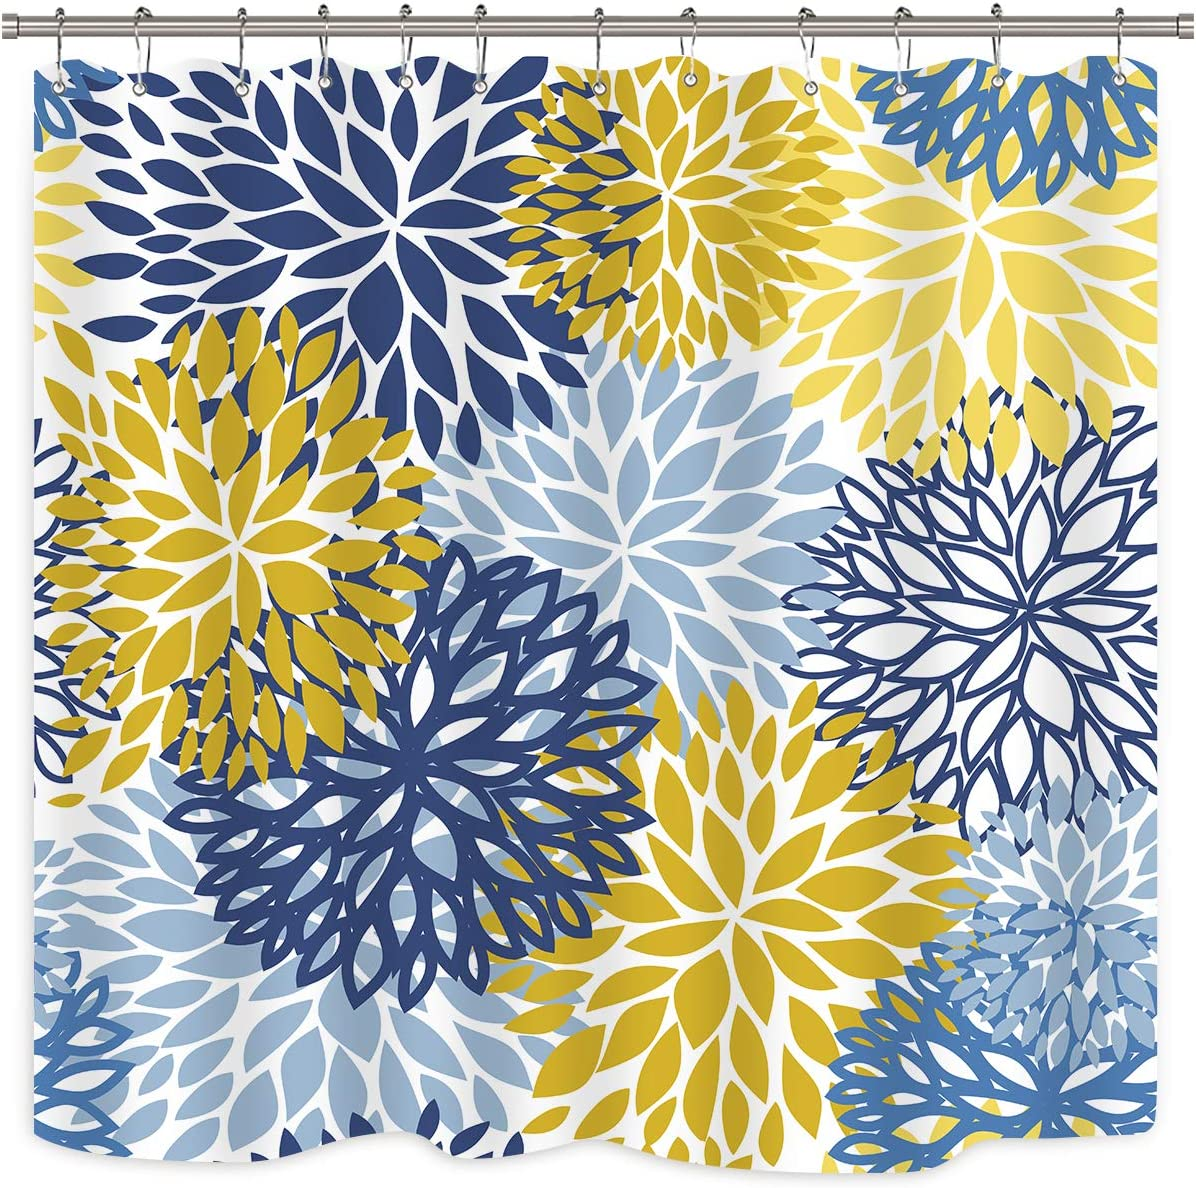 Riyidecor Blue and Yellow Floral Dahlia Shower Curtain Chrysanthemum Rustic Decor Set Fabric Waterproof Polyester 72Wx72H Inch Plastic 12 Pack Hooks